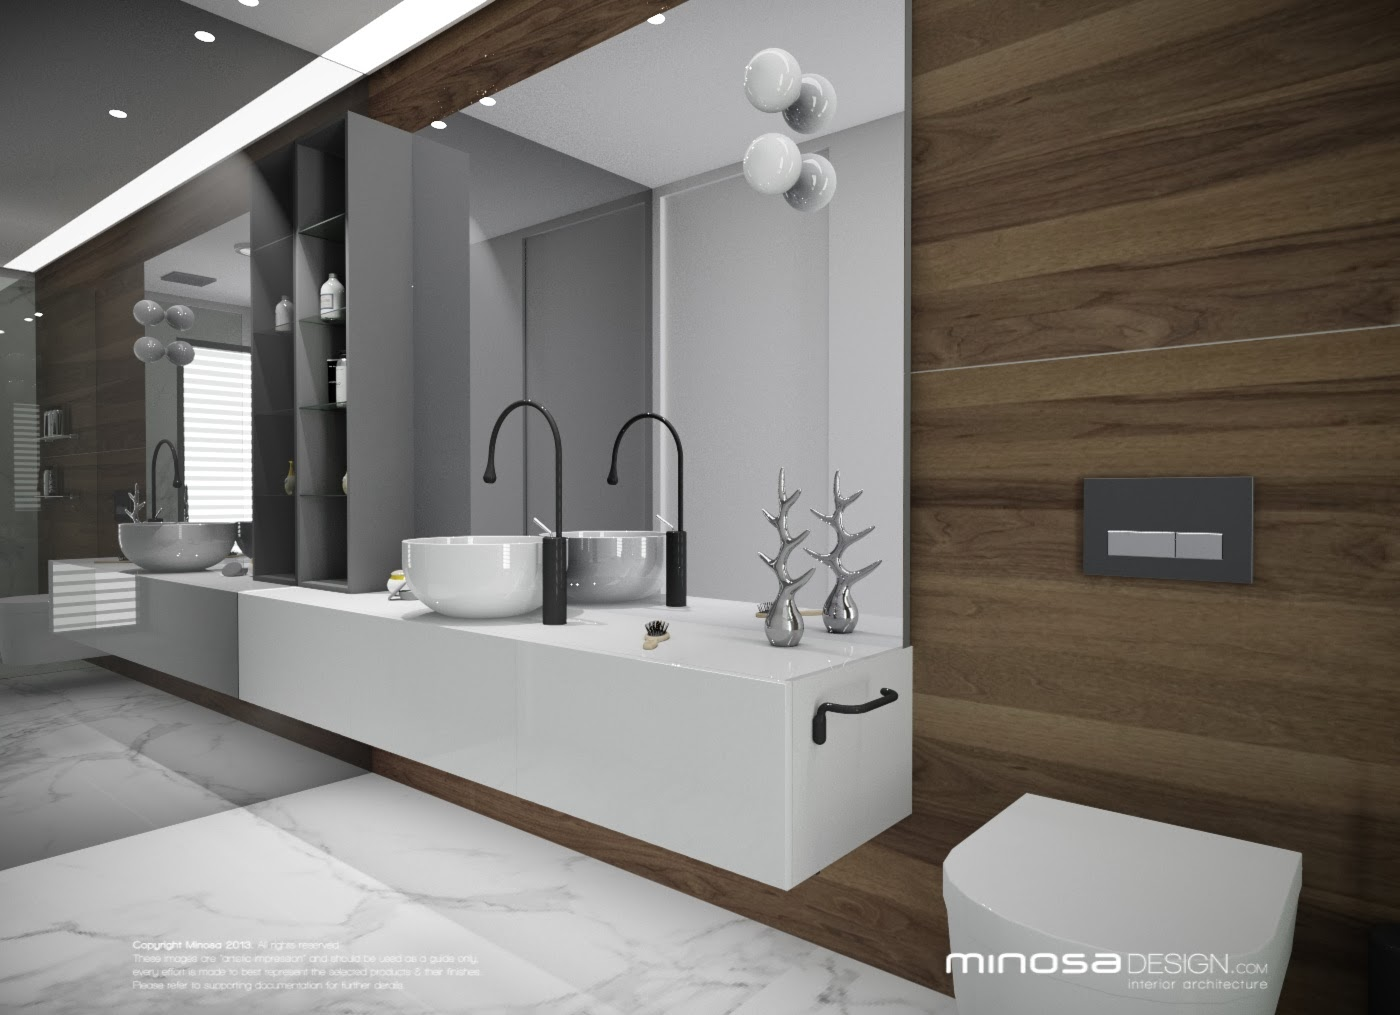 Minosa luxury bathroom design by minosa for The bathroom designer